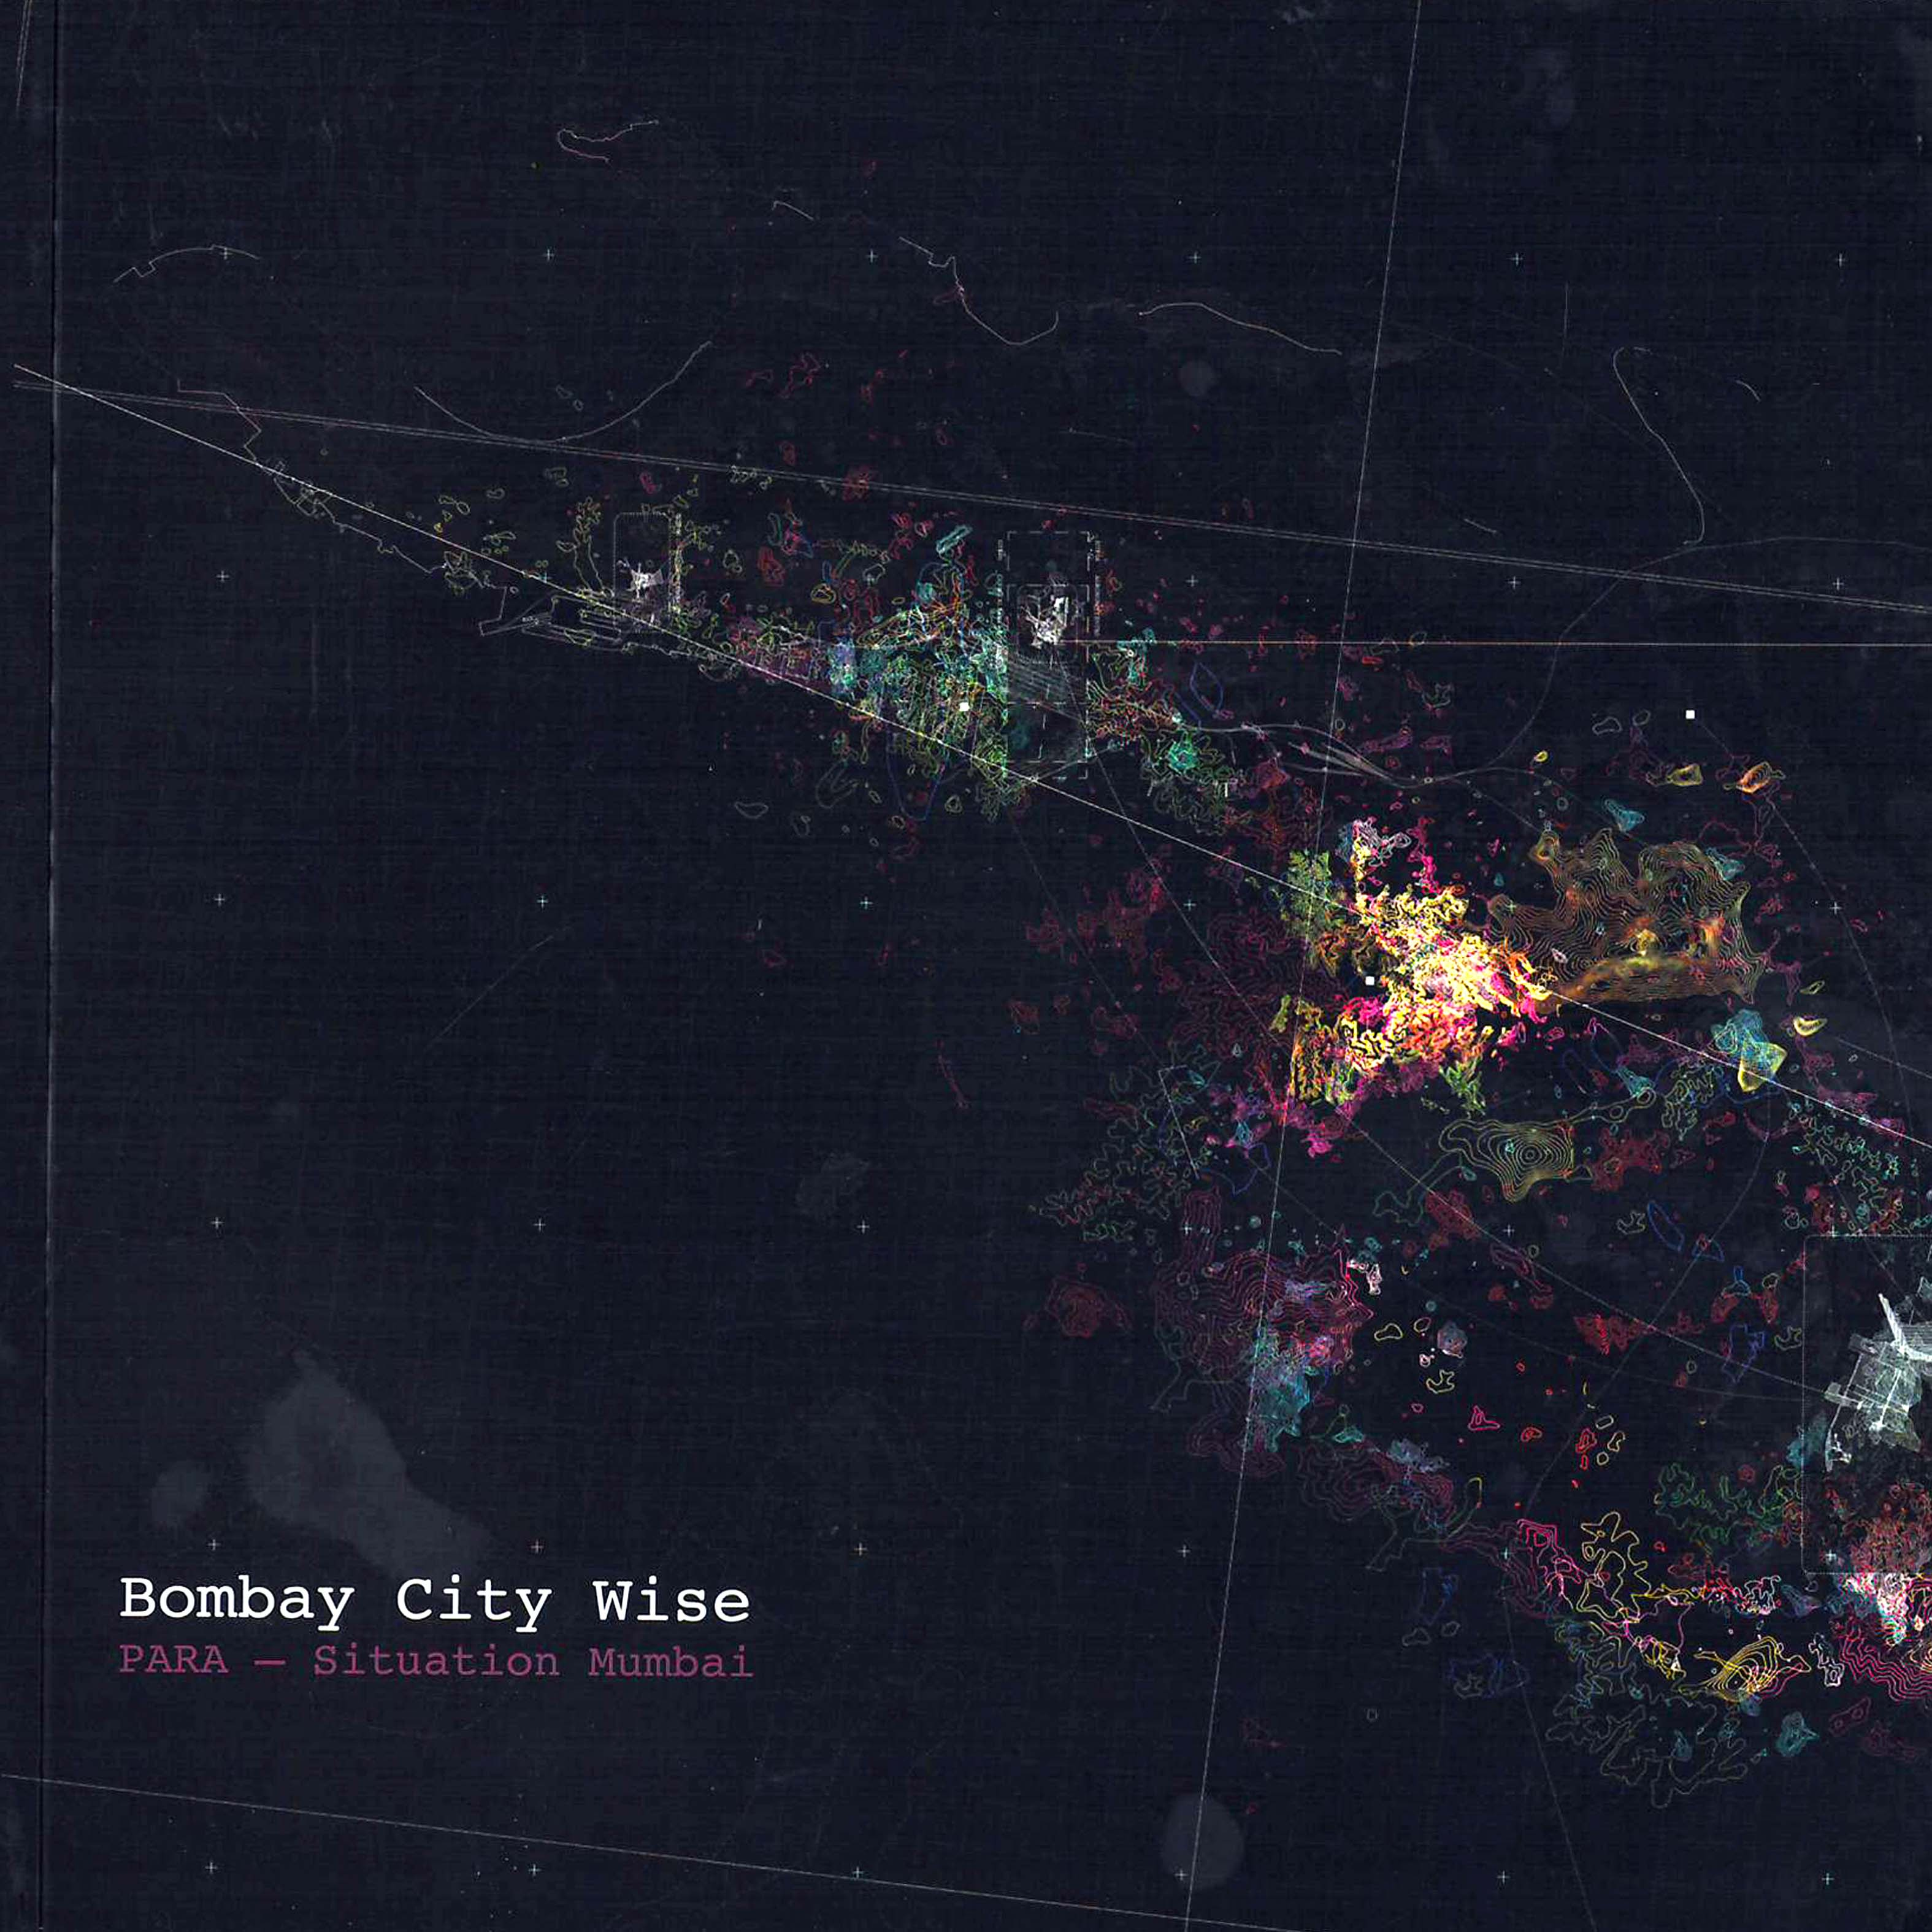 Bombay City Wise - PARA Situation Mumbai by Dorian Wisziewski; featuring an Architectural Practice in Mumbai by Brinda Somaya at Edinburgh School of Architecture and Landscape Architecture (ESALA) - October 2016